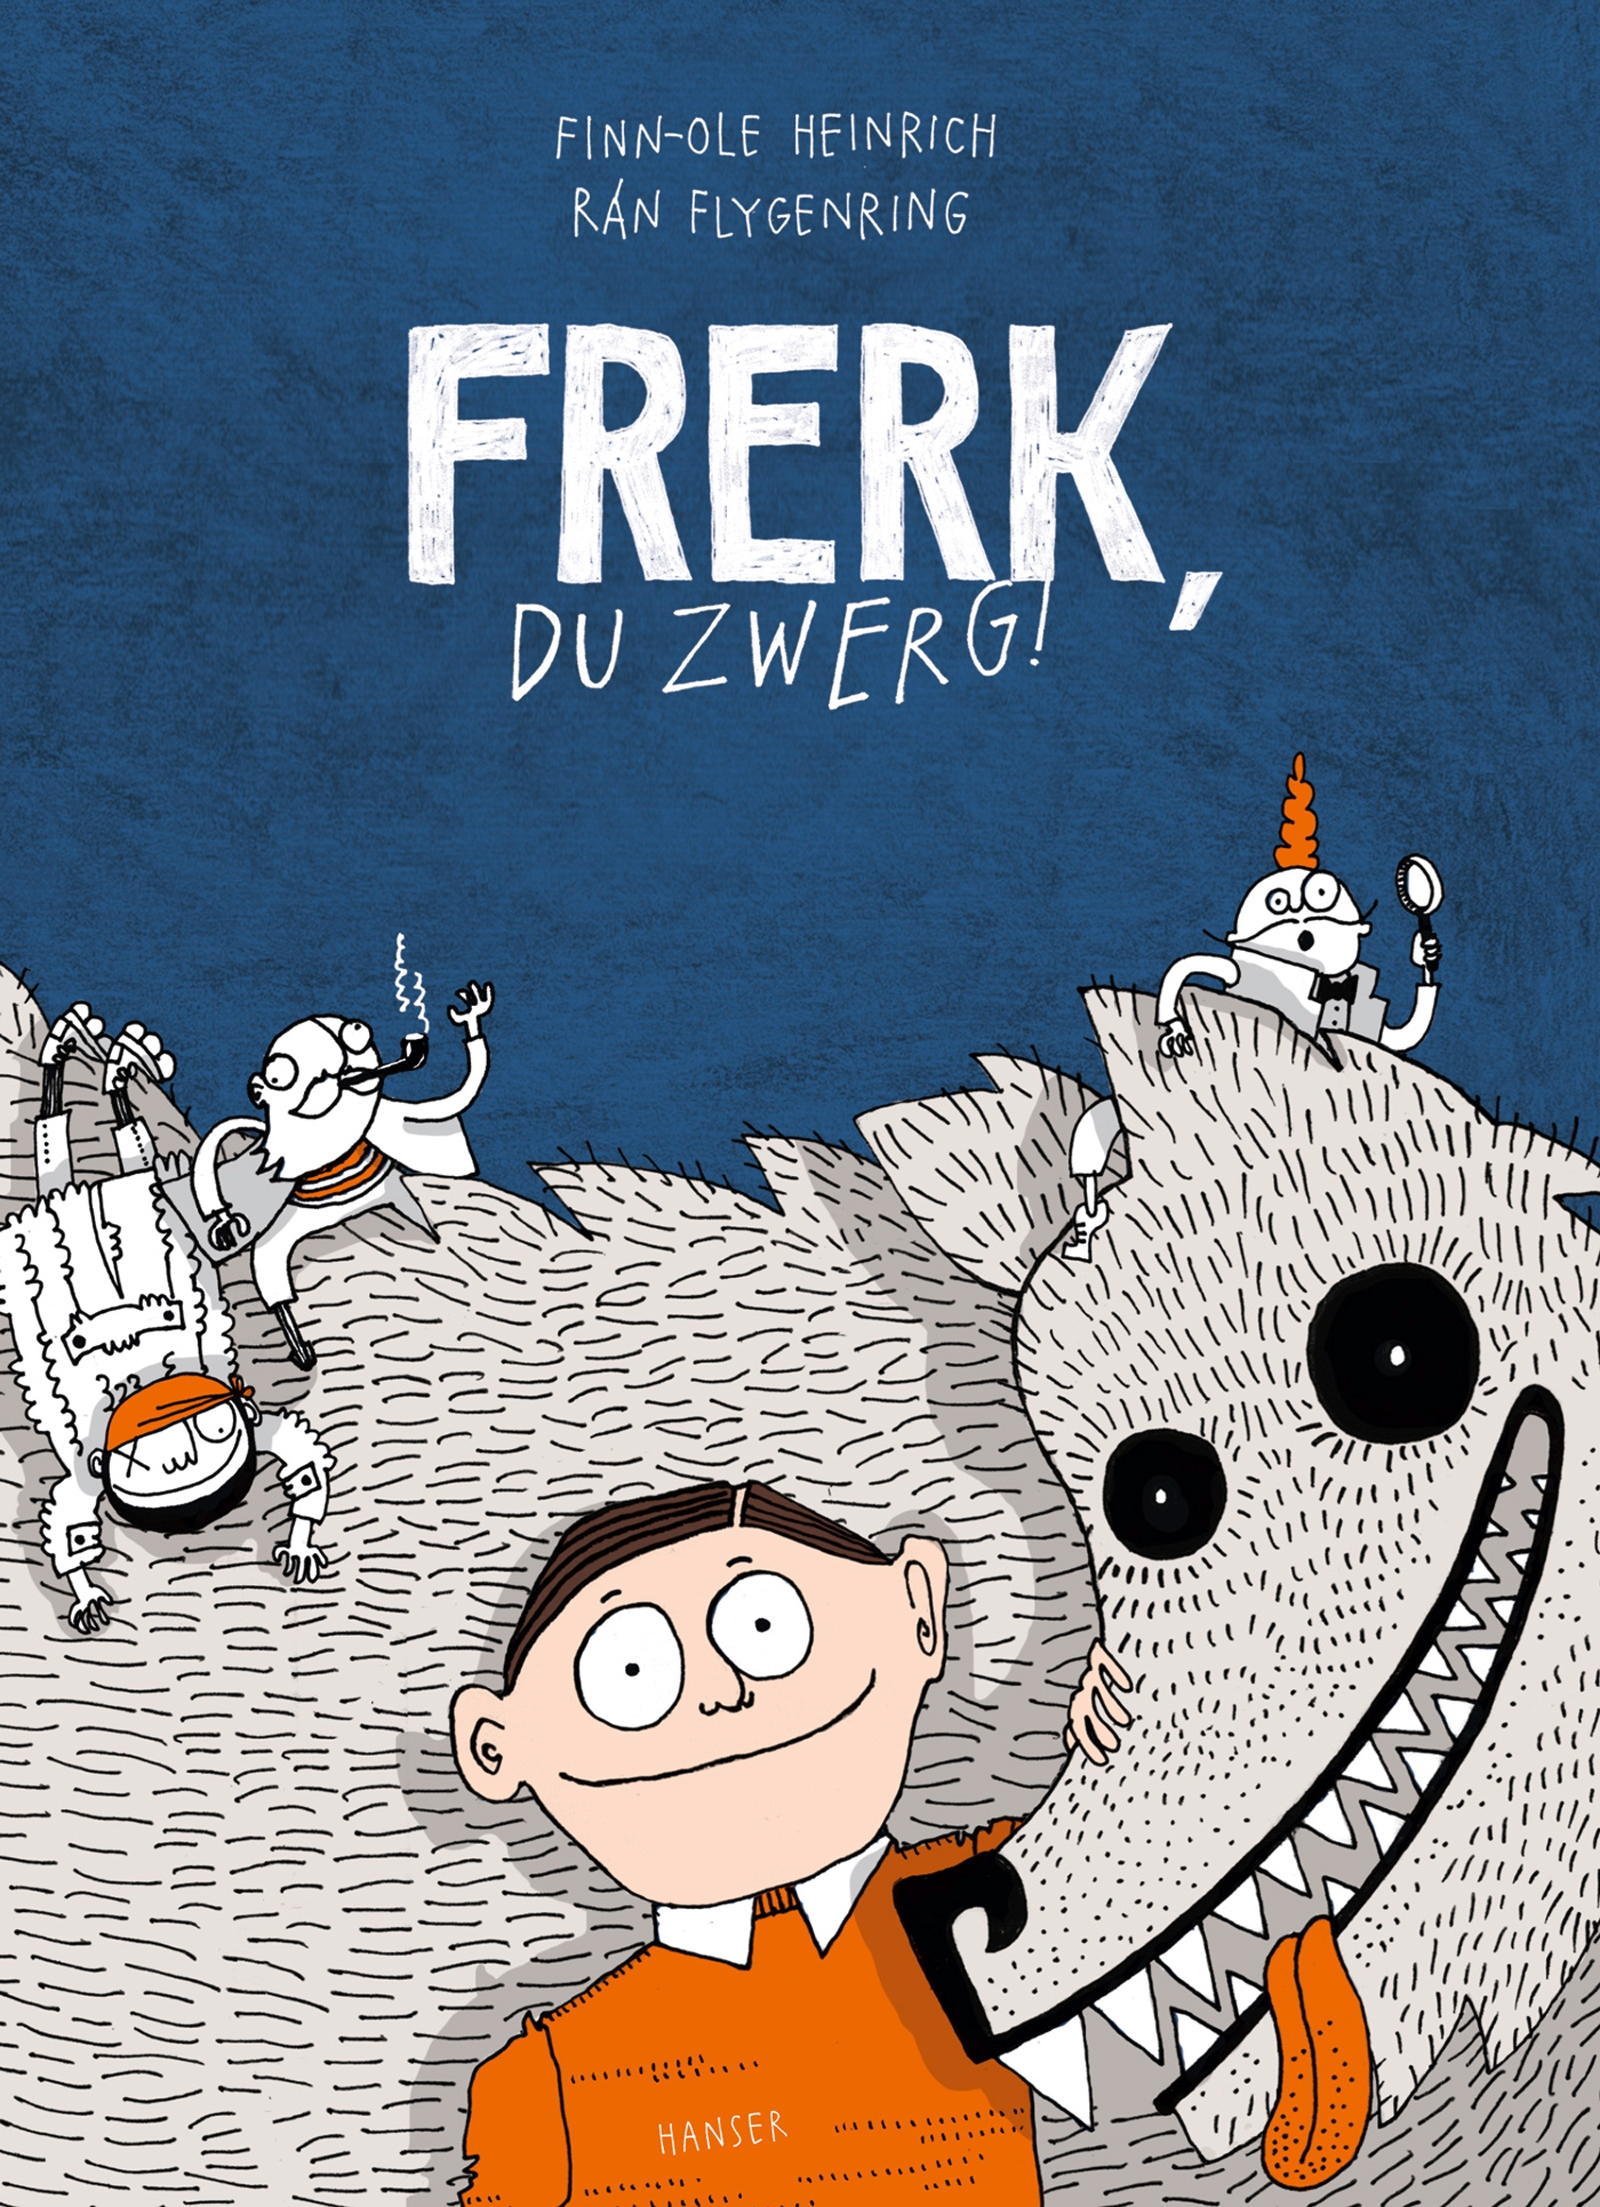 Frerk the Dwarf